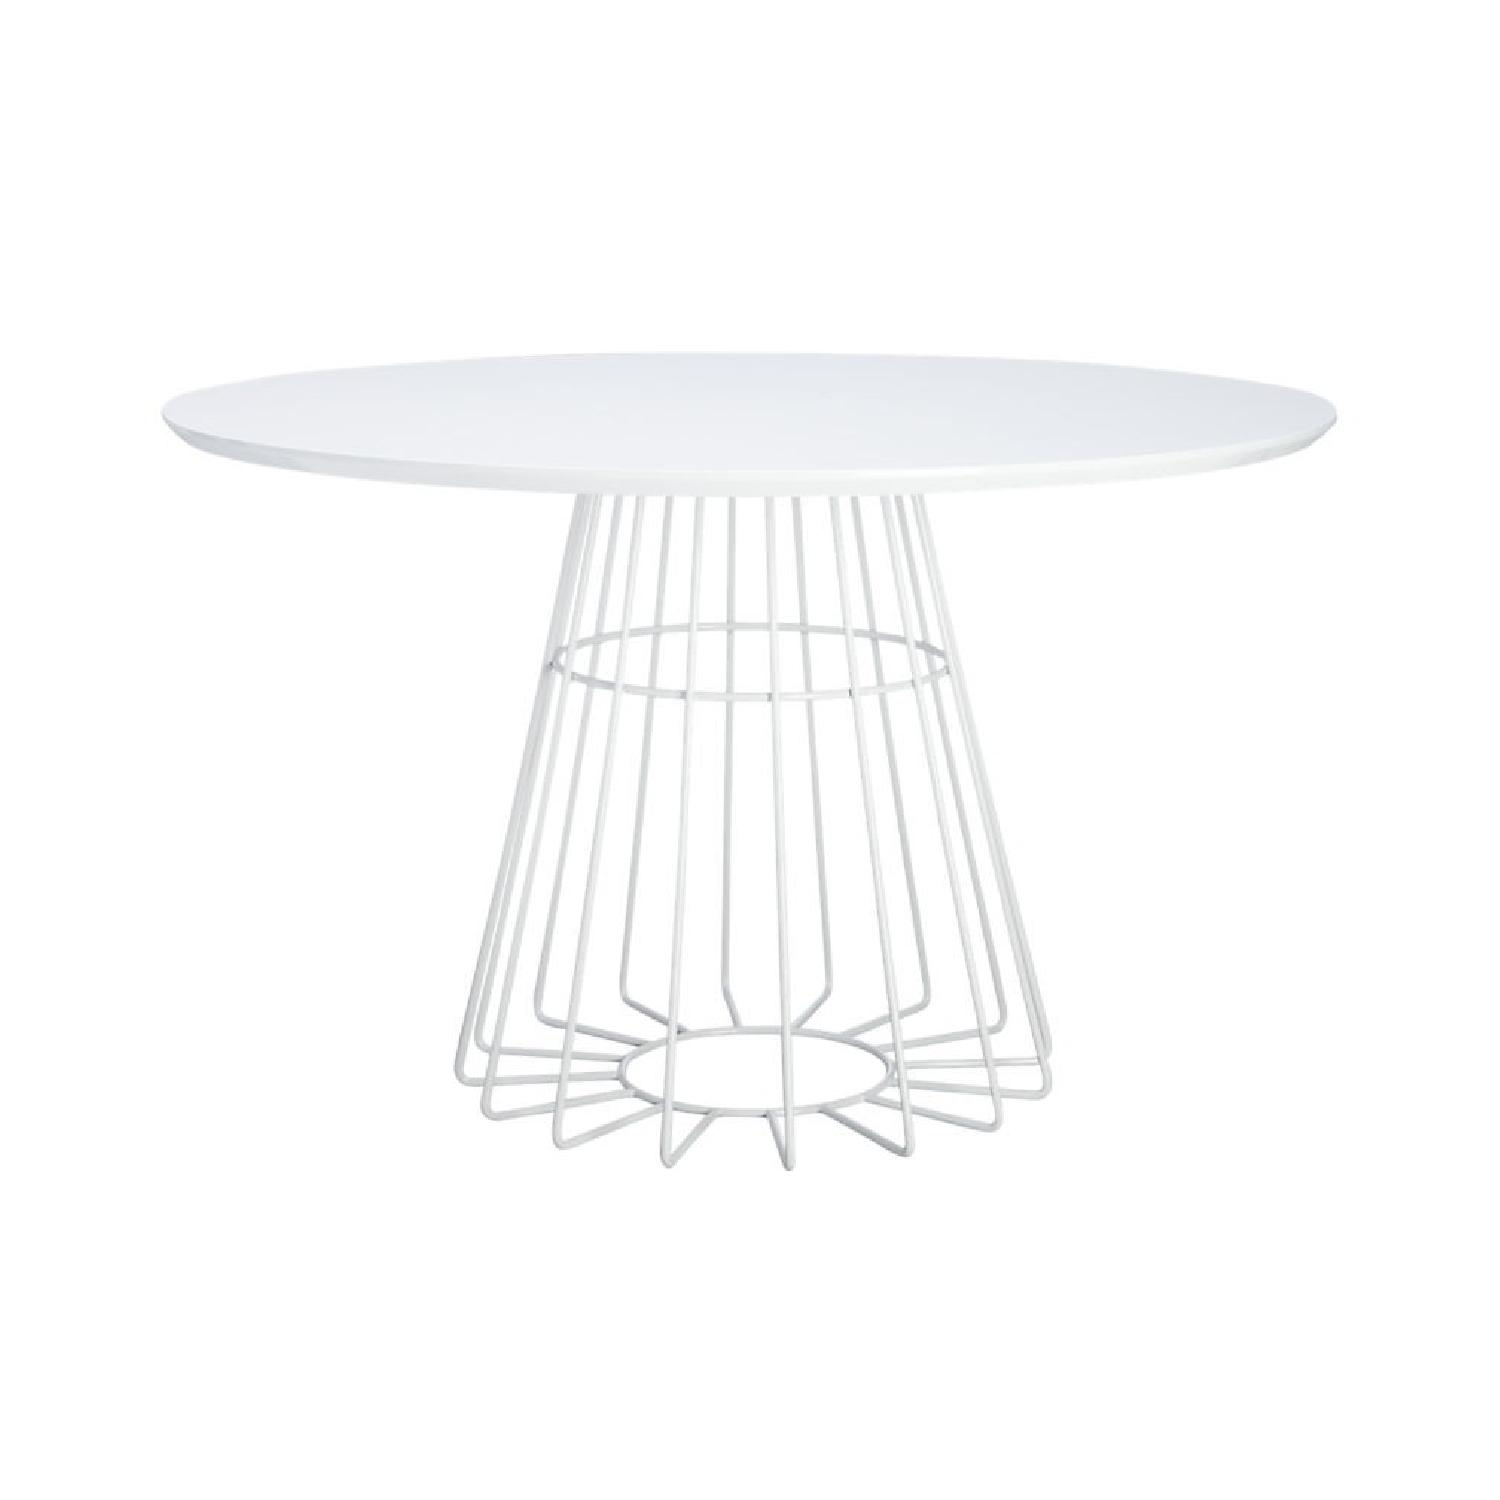 CB2 Compass Dining Table